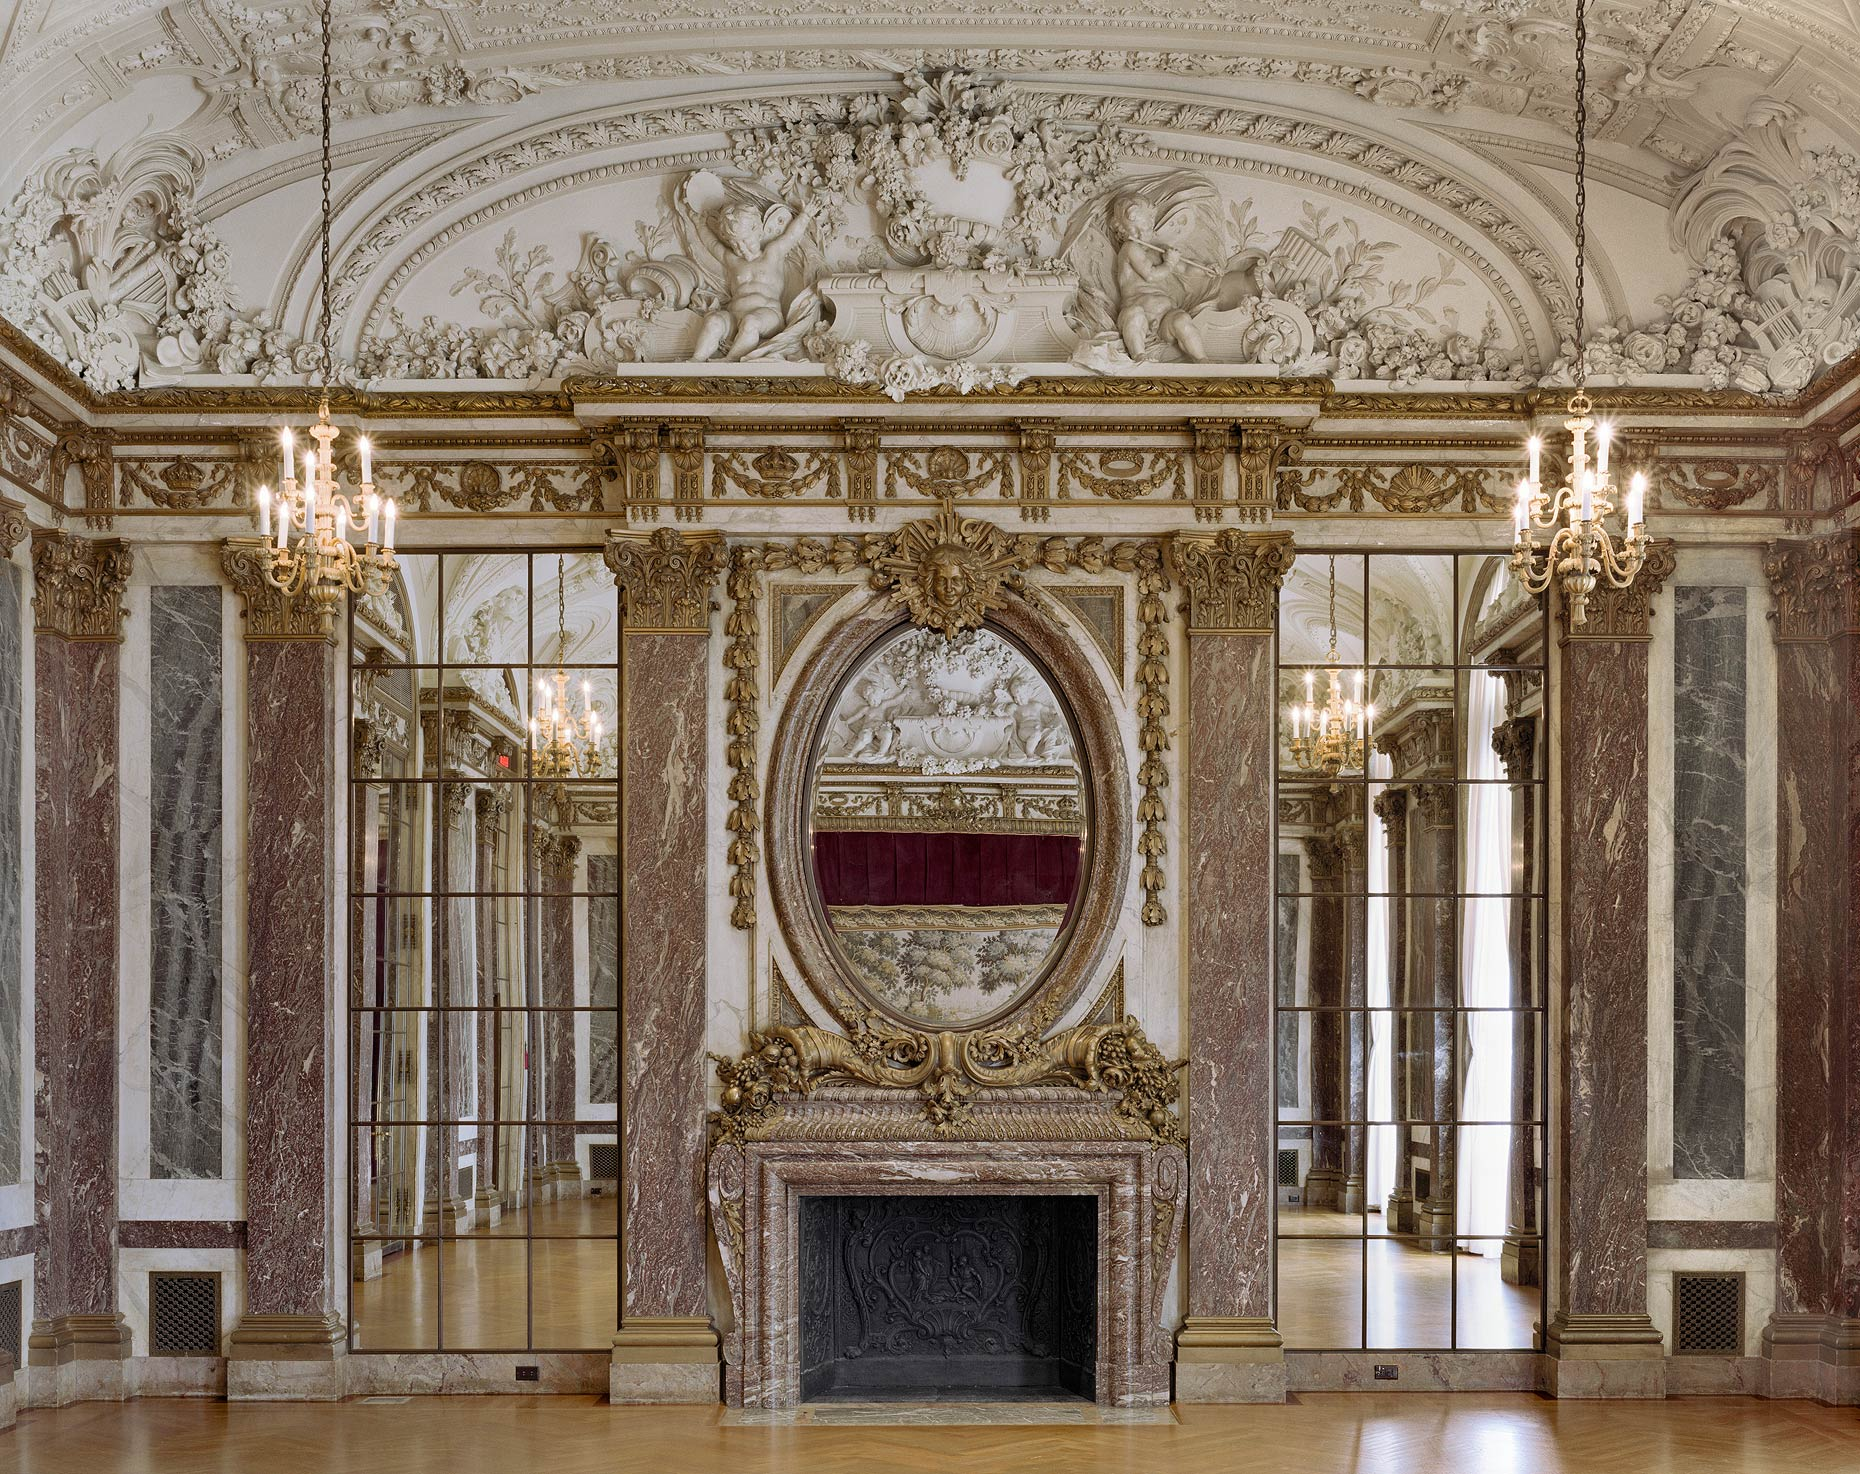 Ballroom, Burden Mansion, Convent of the Sacred Heart, 1 East 91st Street, New York City, 2015